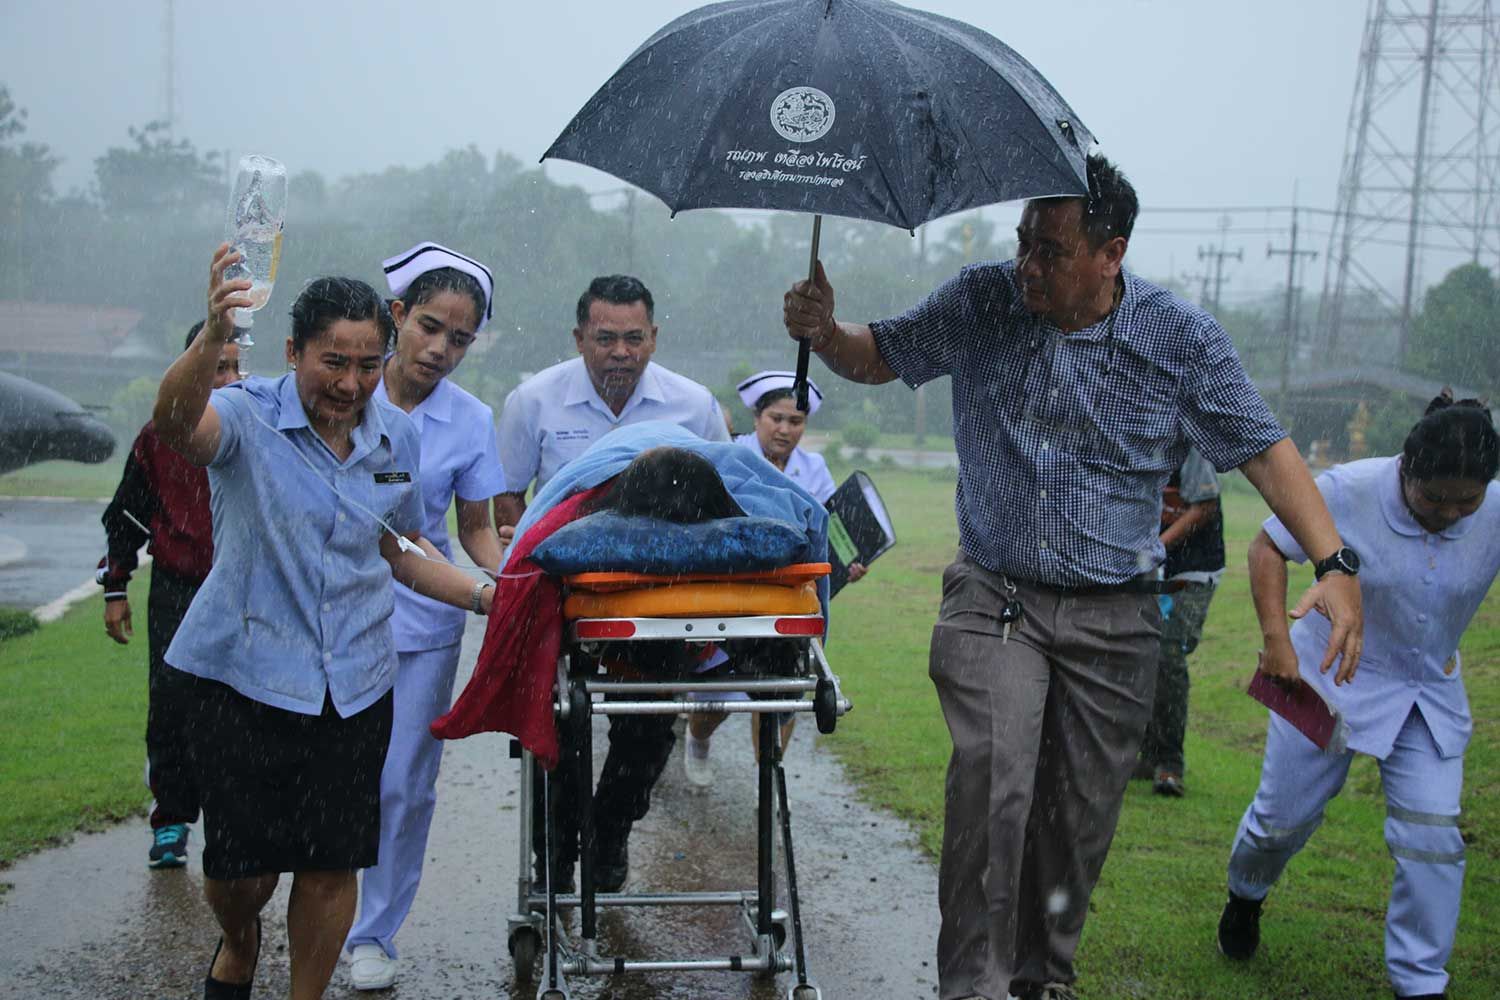 A woman with pregnancy complications is taken to a helicopter in pouring rain at a remote village near Thungyai Naresuan Wildlife Sanctuary in Sangkhla Buri district, Kanchanaburi, on Wednesday aftrnoon. The 33-year-old woman was airlifted safely to Sangkhla Buri Hospital. (Photo by Piyarat Chongcharoen)